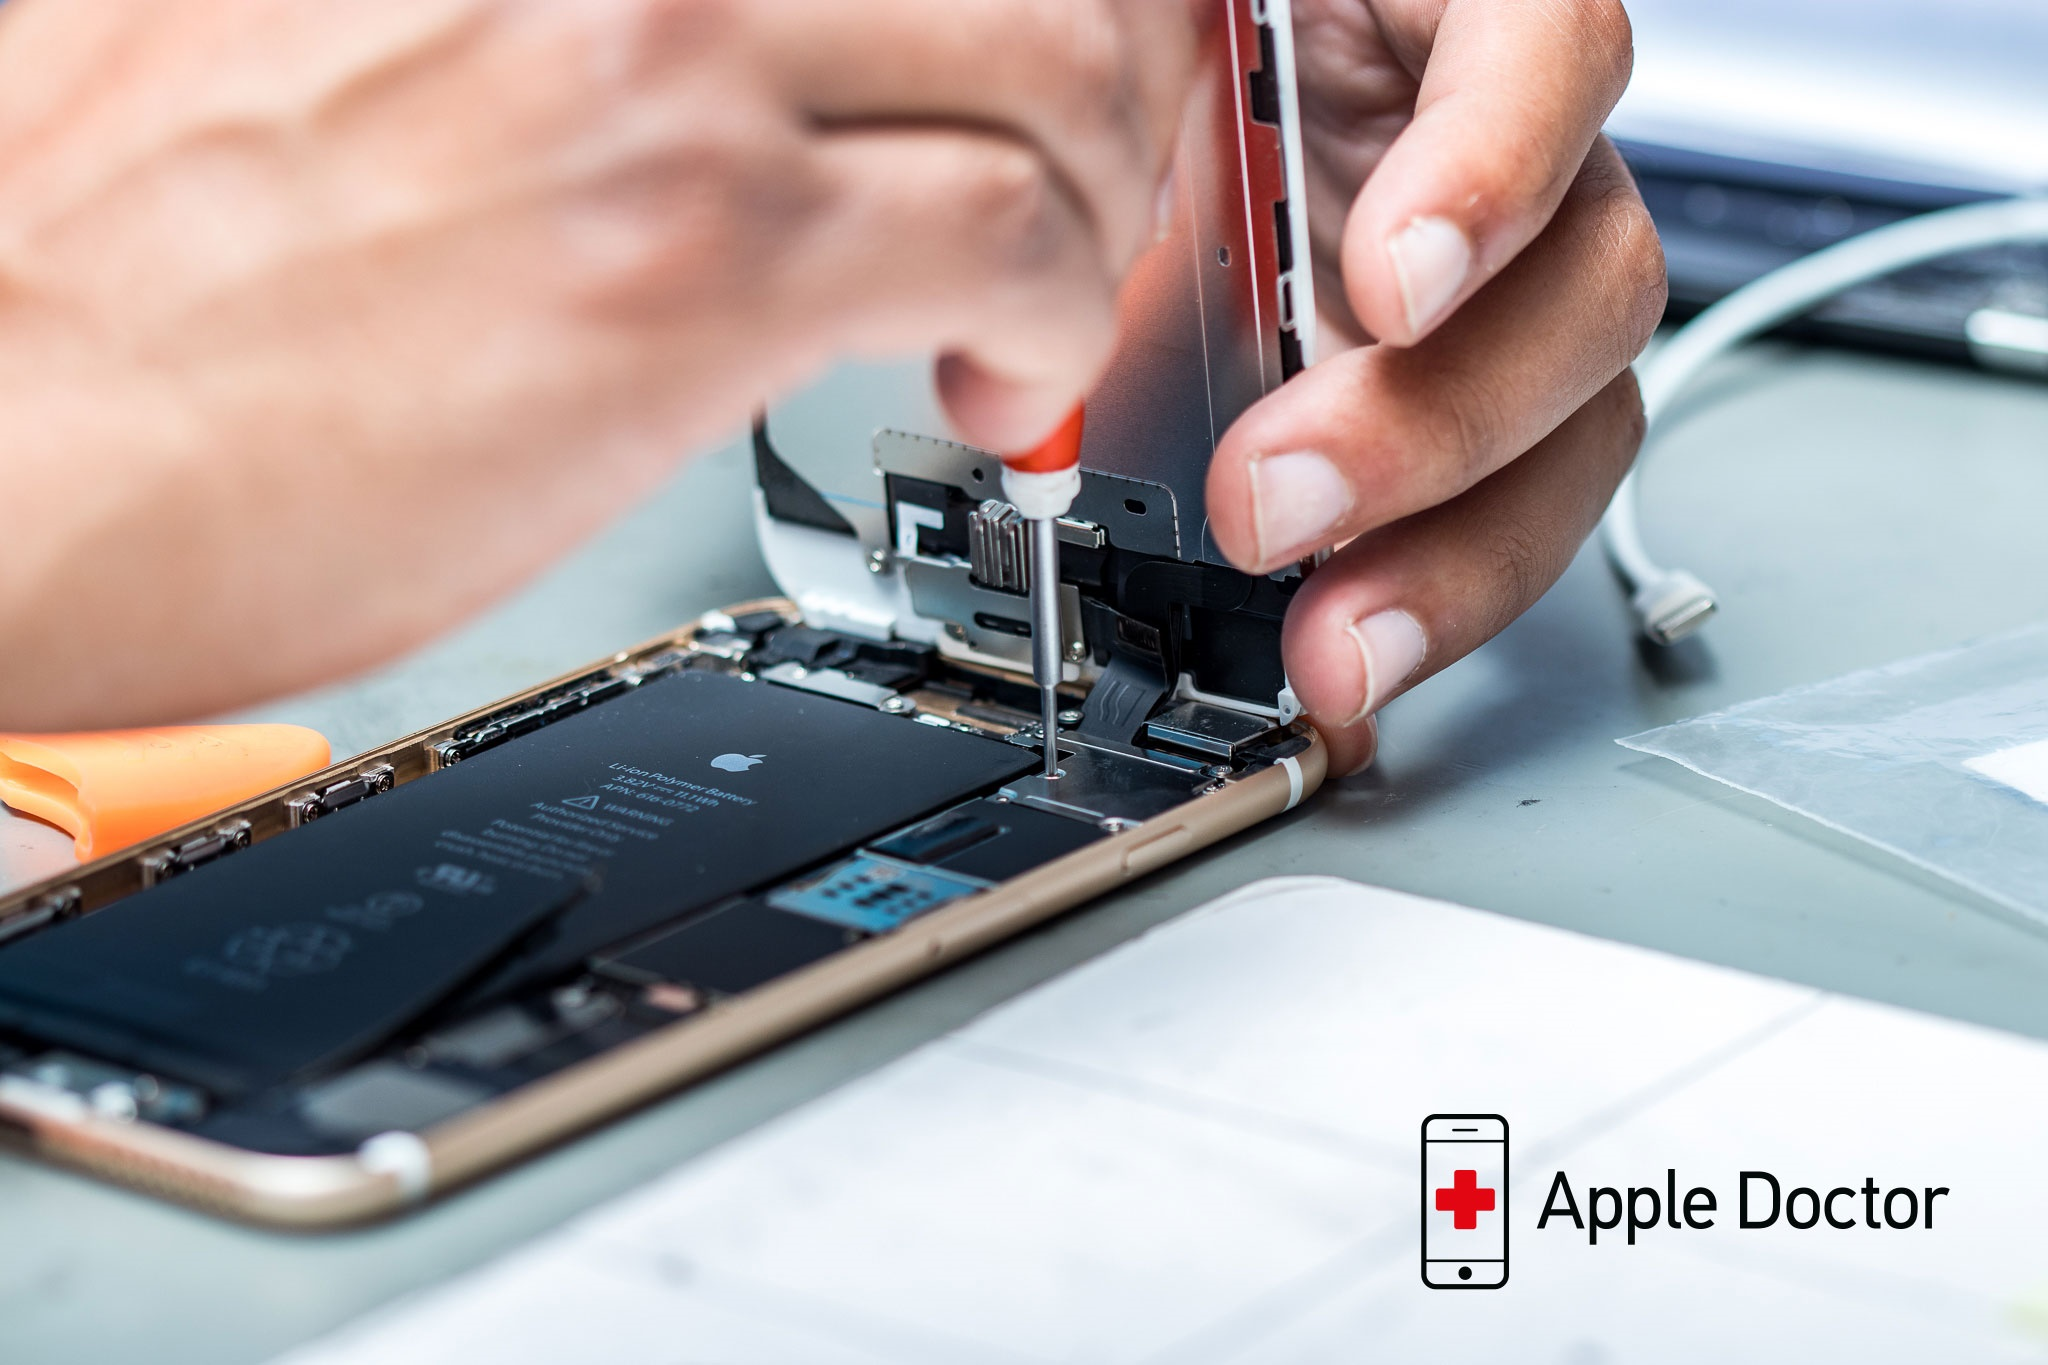 Apple Doctor's decade of mobile repairing – a story to tell